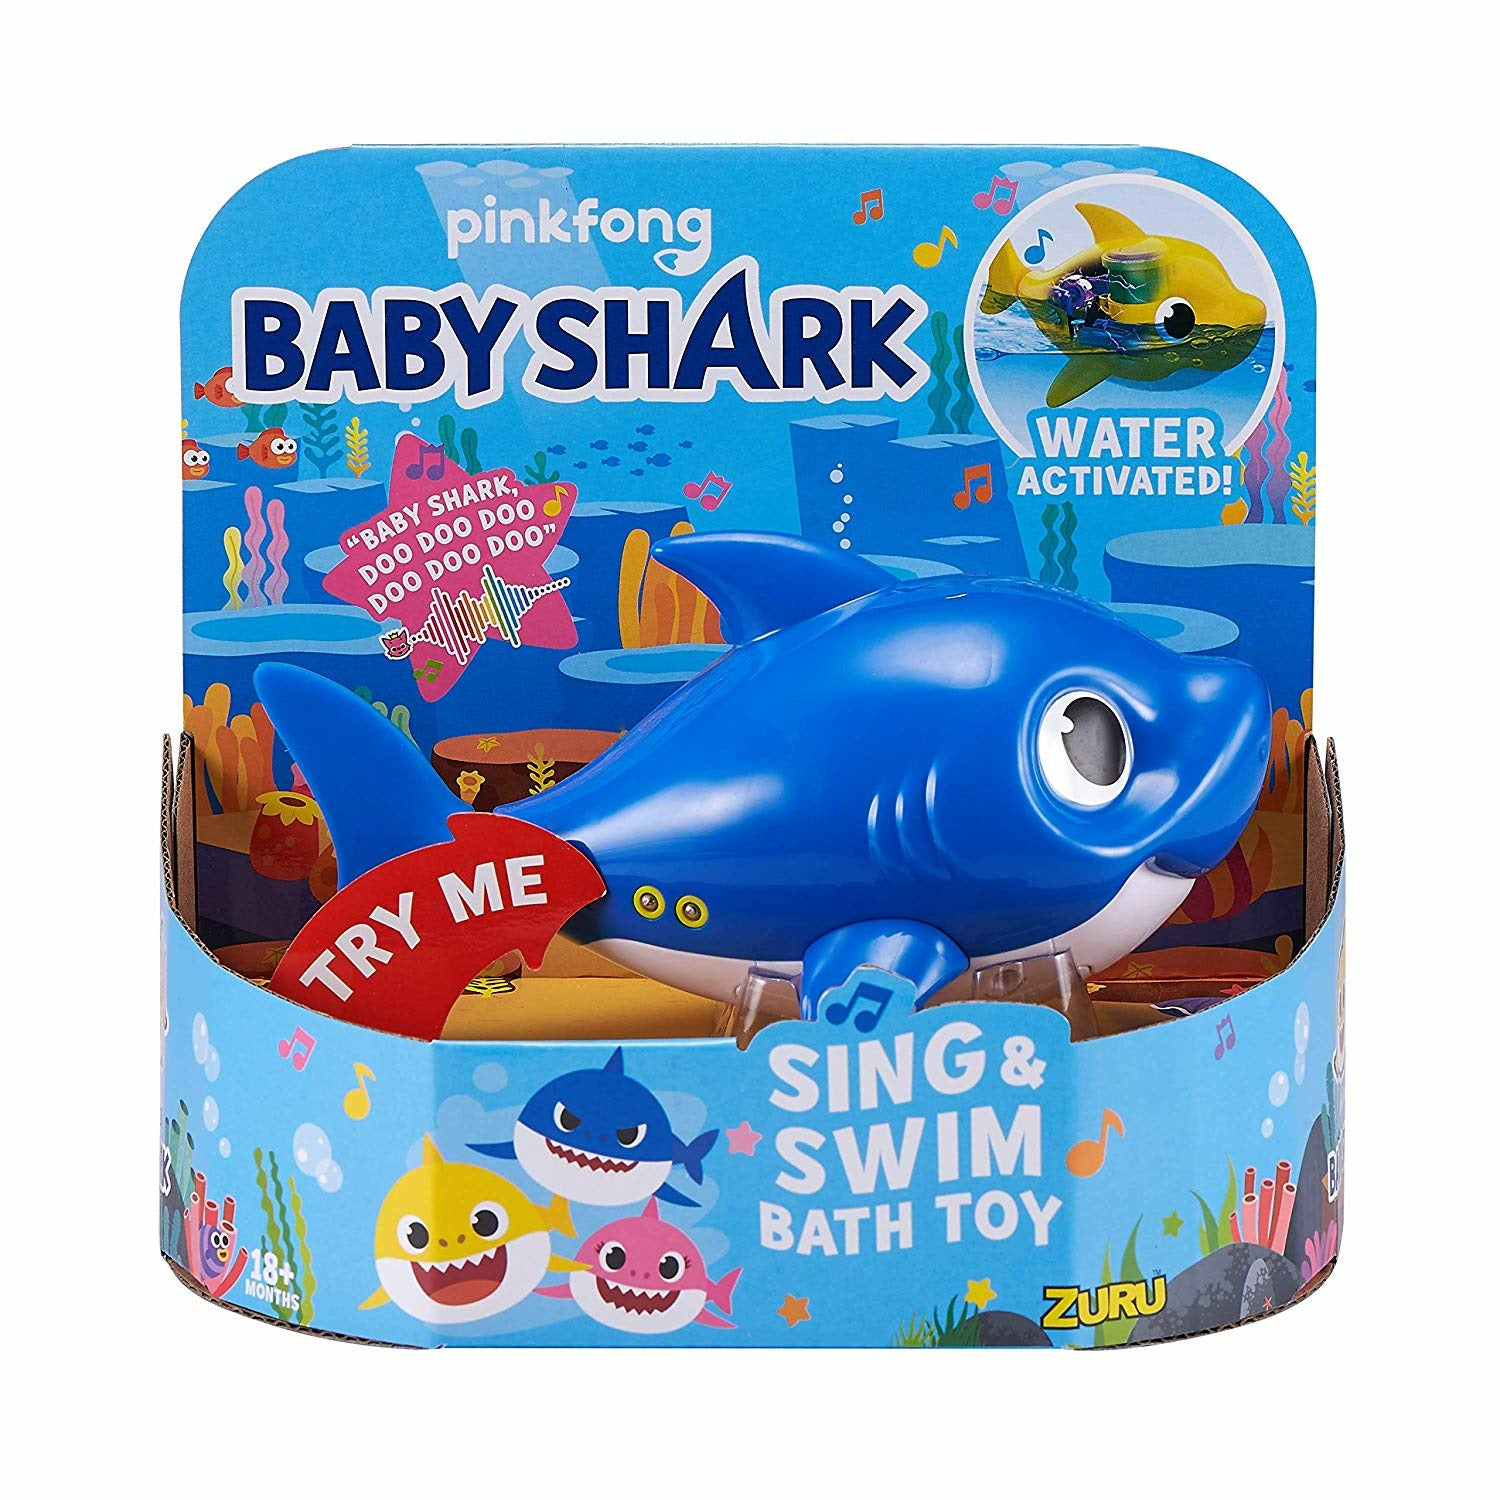 Baby Shark Daddy Shark Blue Robo Alive Junior Sing & Swim Bath Toy